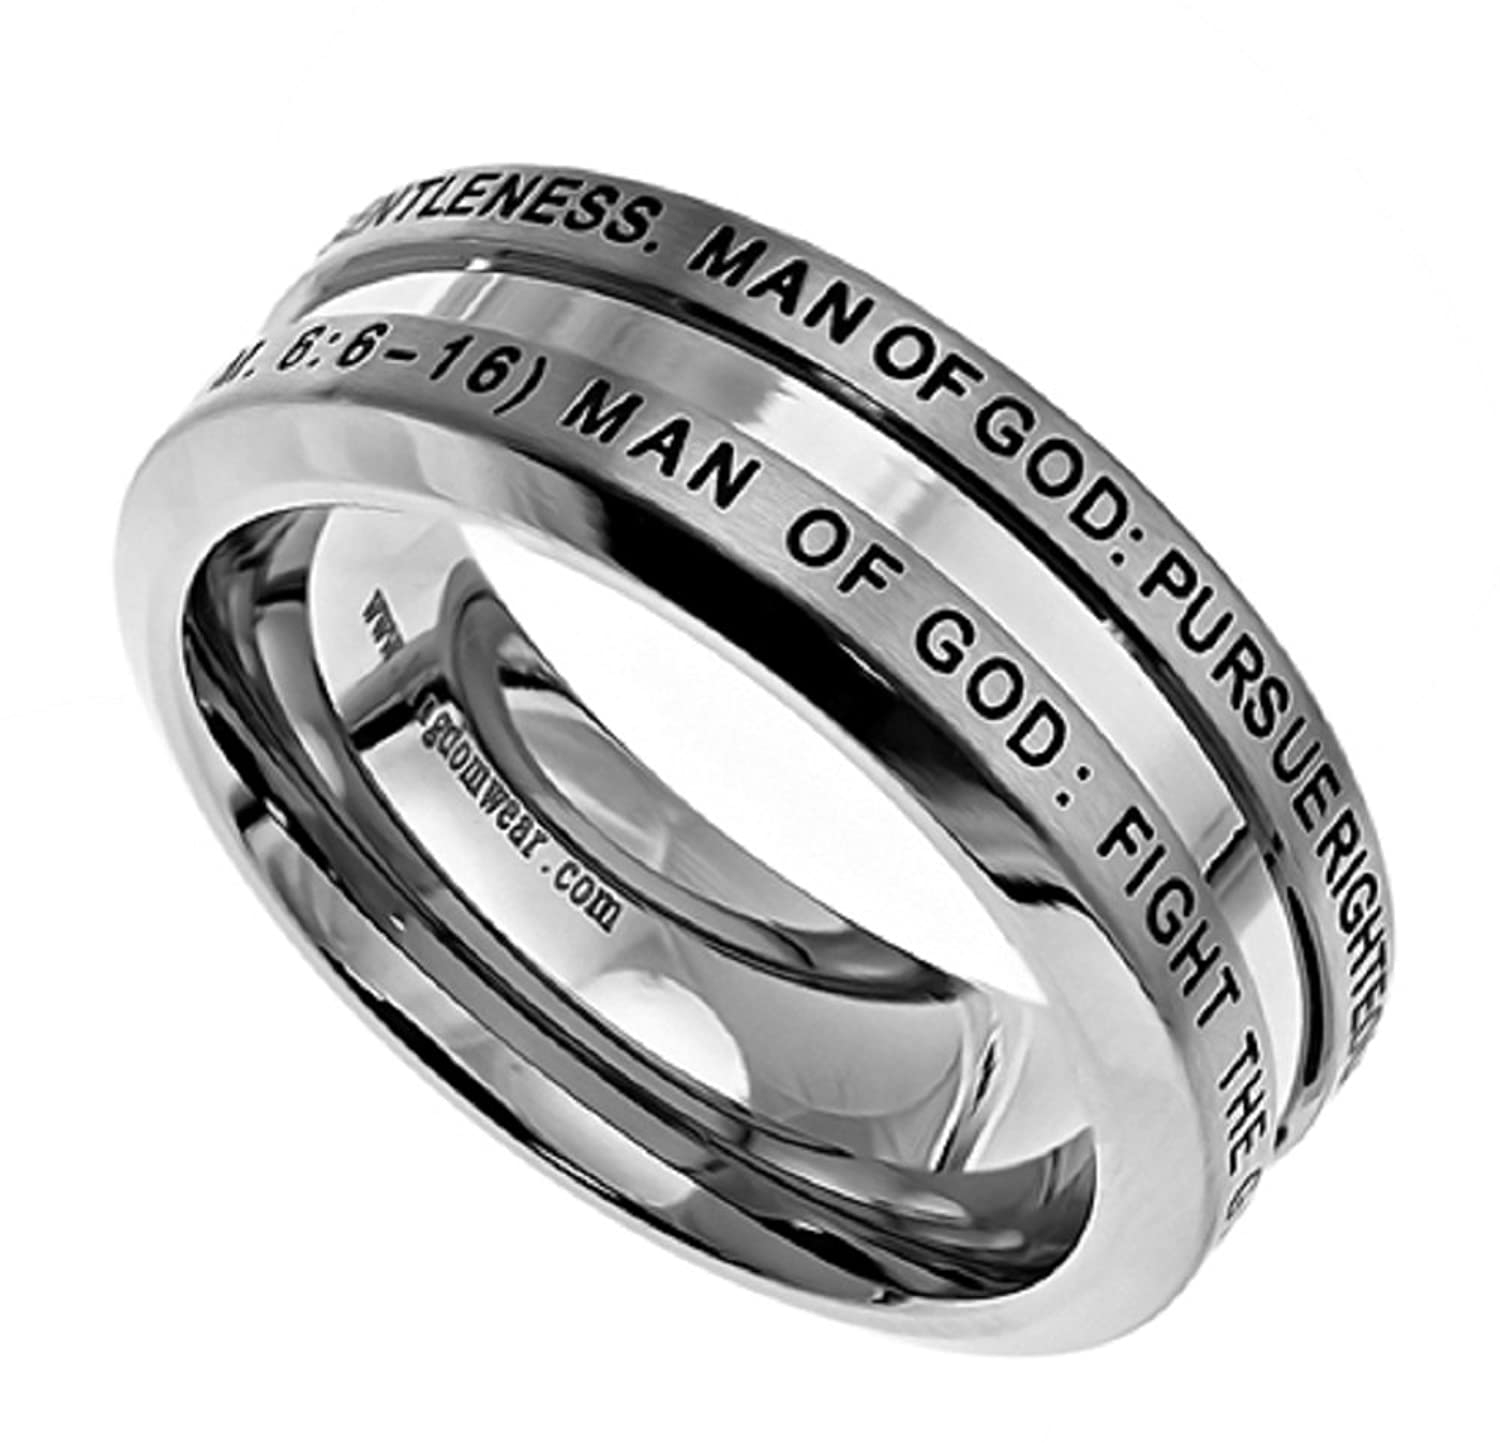 Man of God Industrial Band Silver Stainless Steel Ring With Verse 1 Tim. 6:6-16